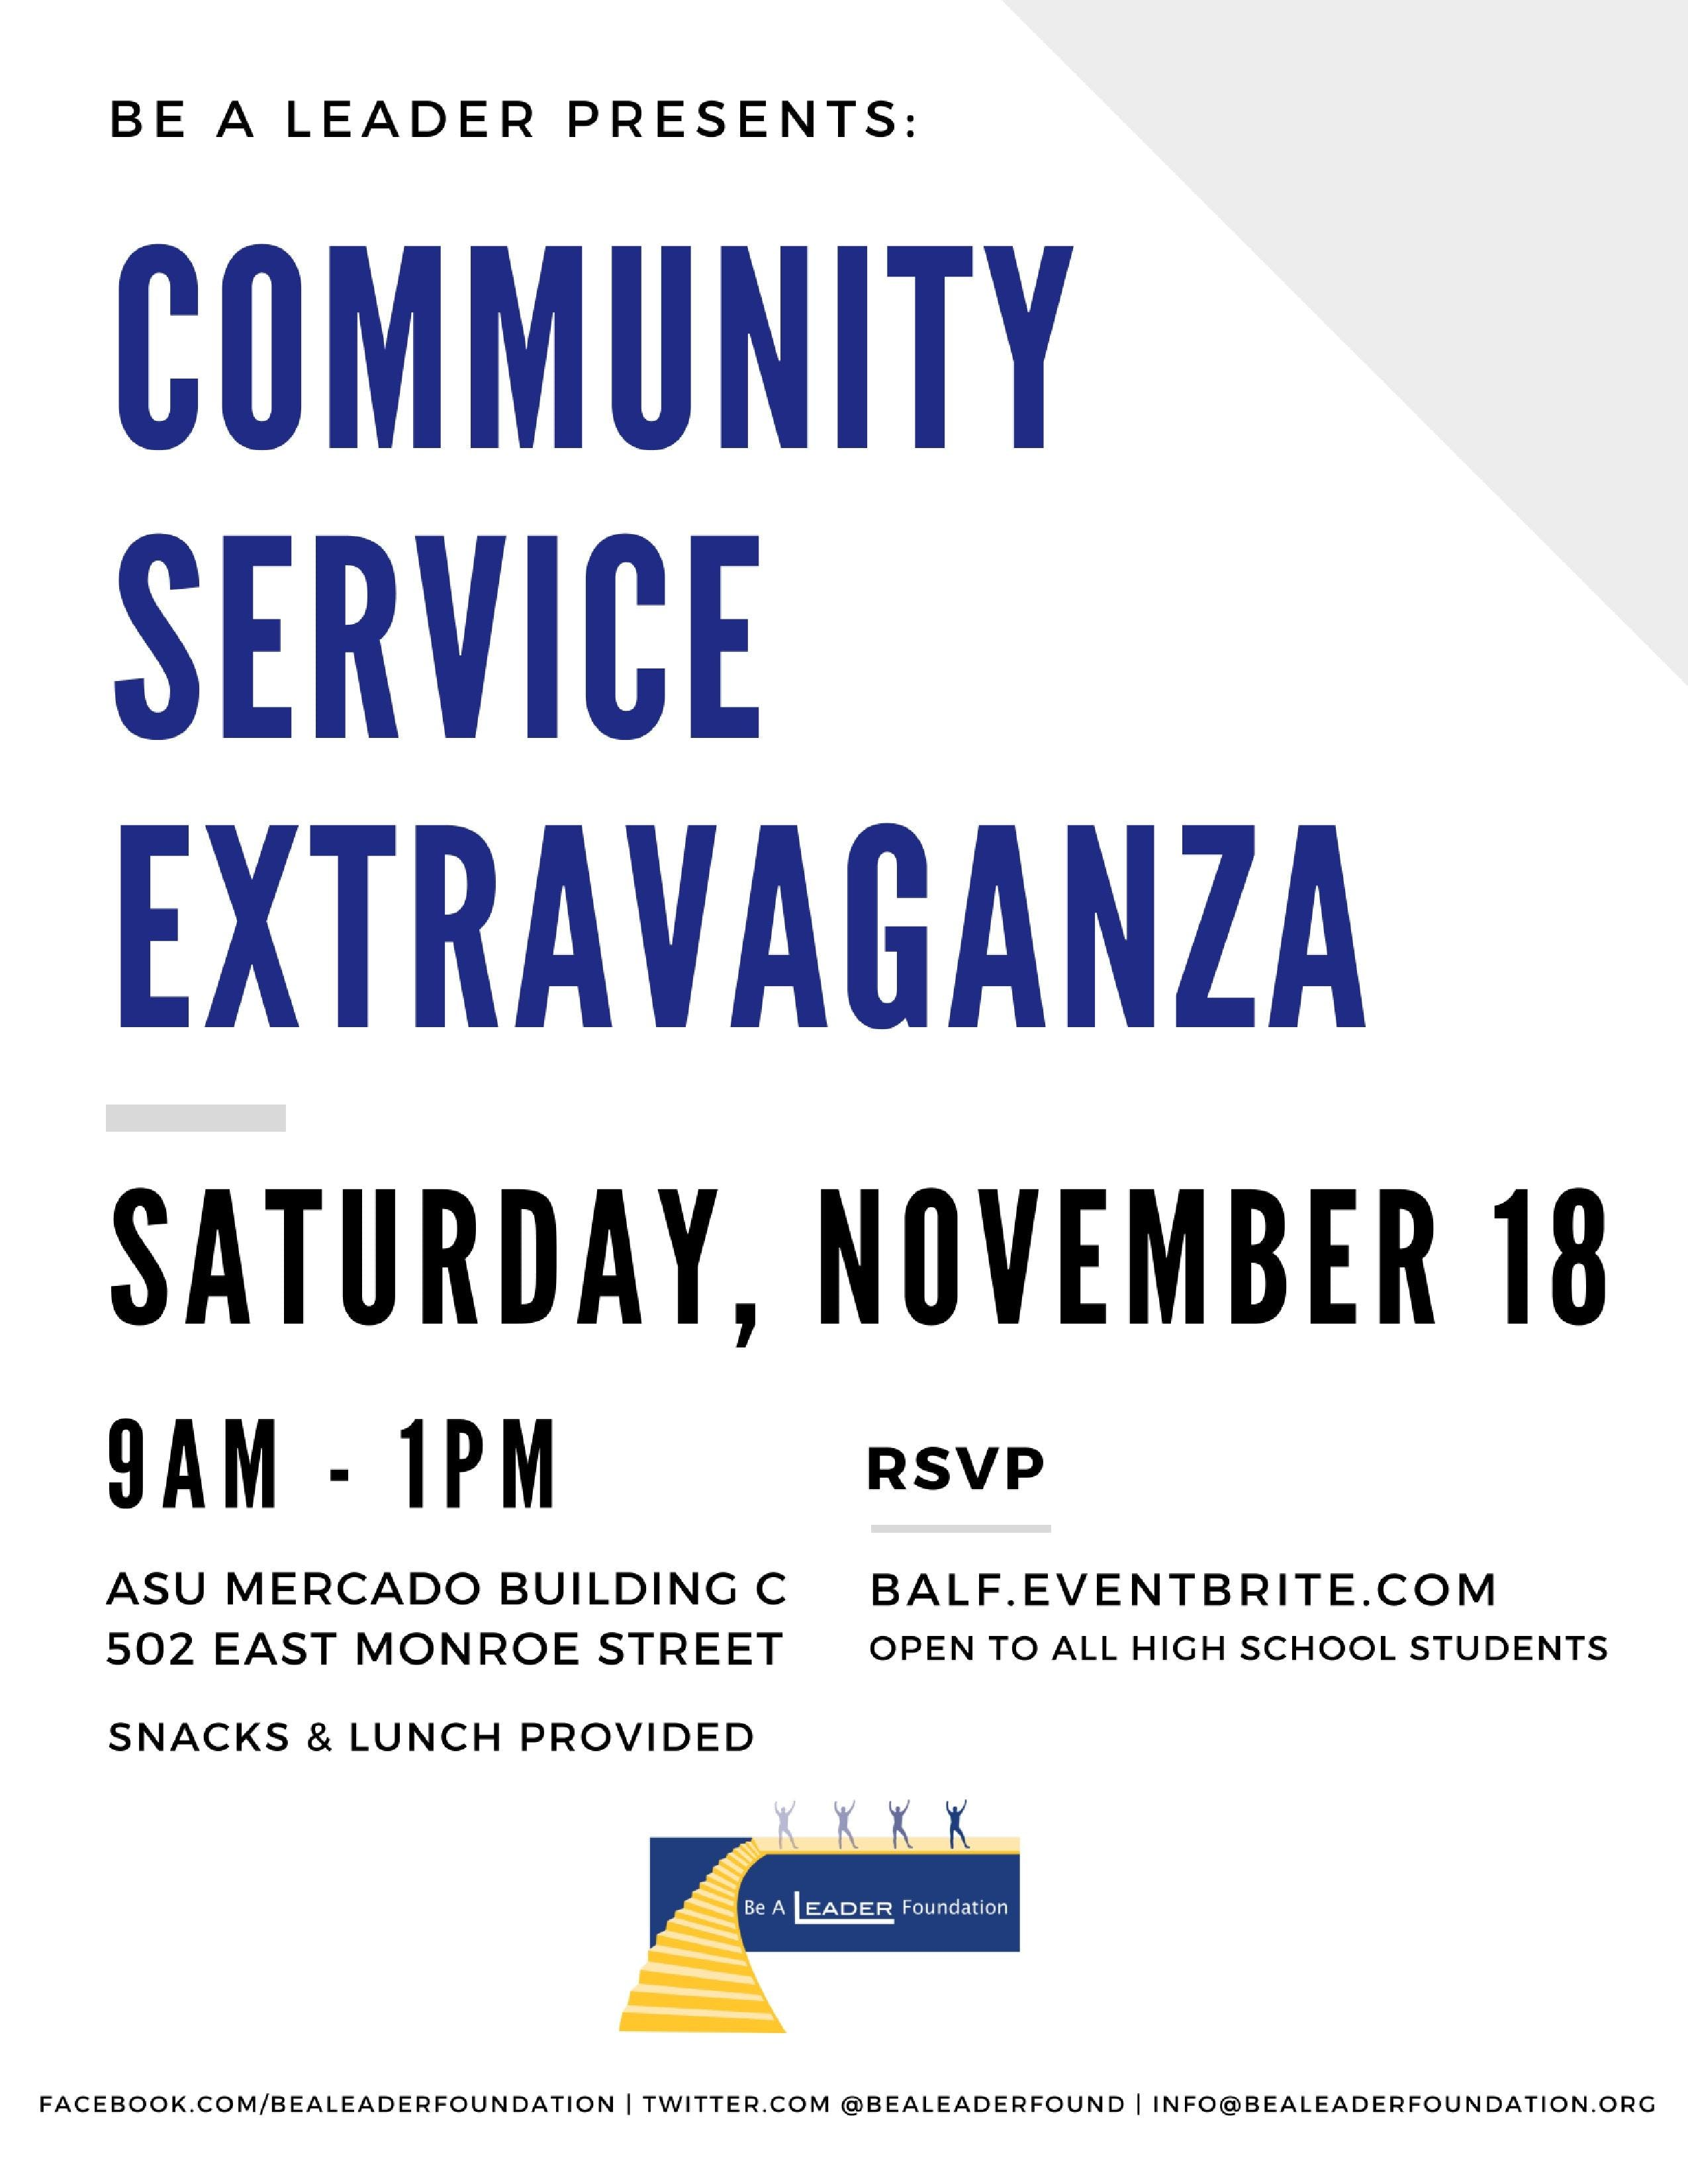 2018 Community Service Extravaganza! (Be A Leader November High School Workshop and Community Service Event)